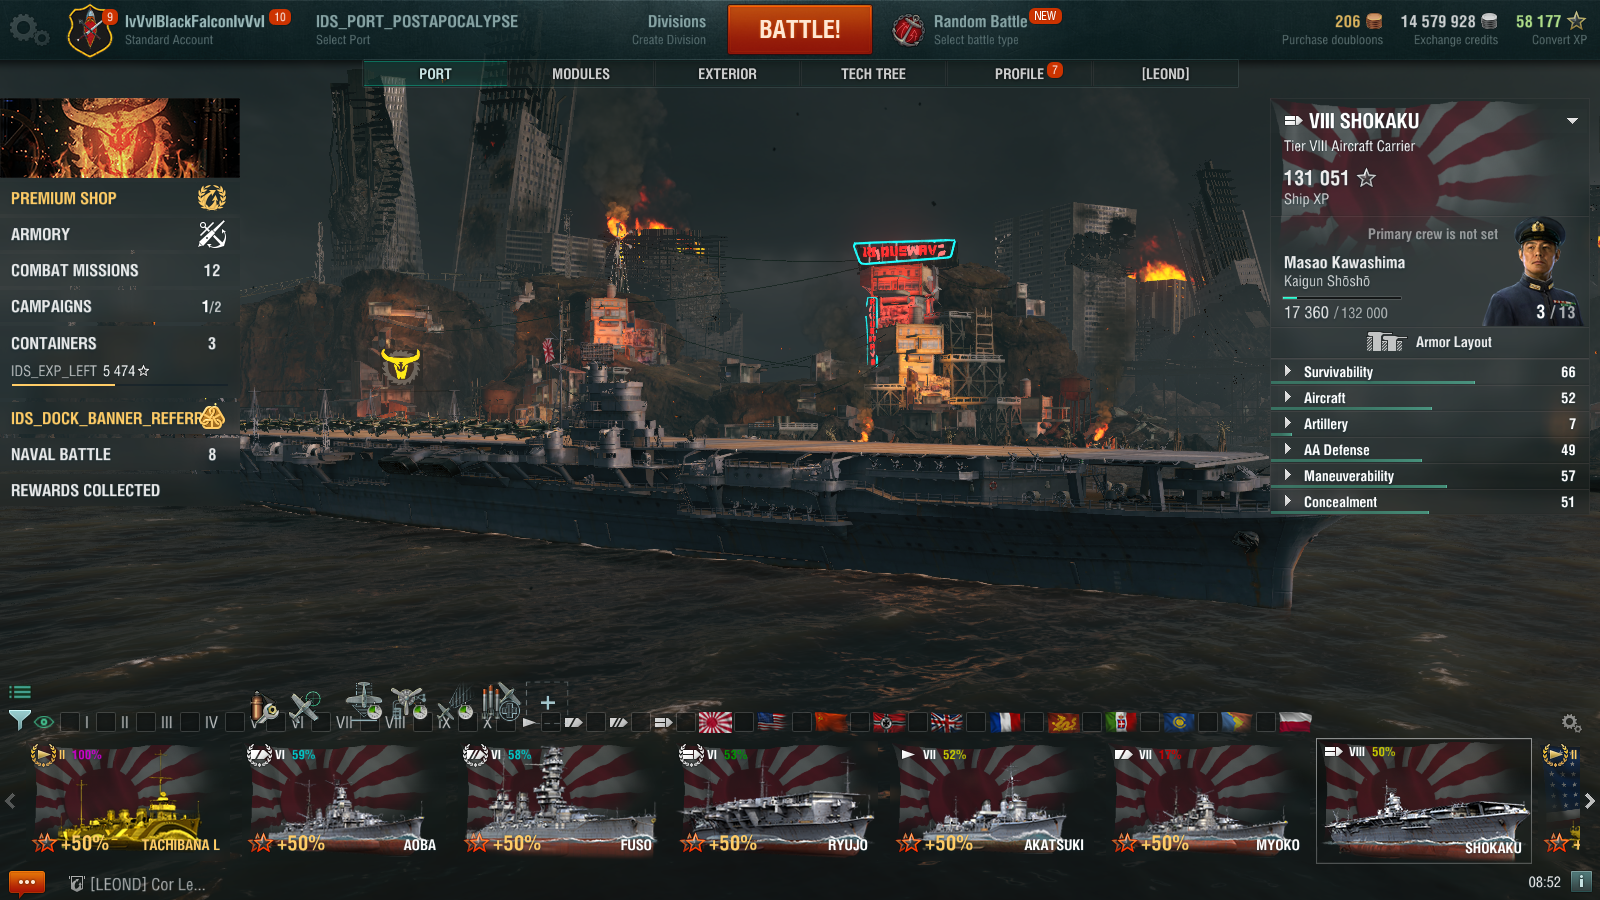 0 8 5 0] Aslain's WoWS ModPack Installer #03 (28-06-2019) - Page 181